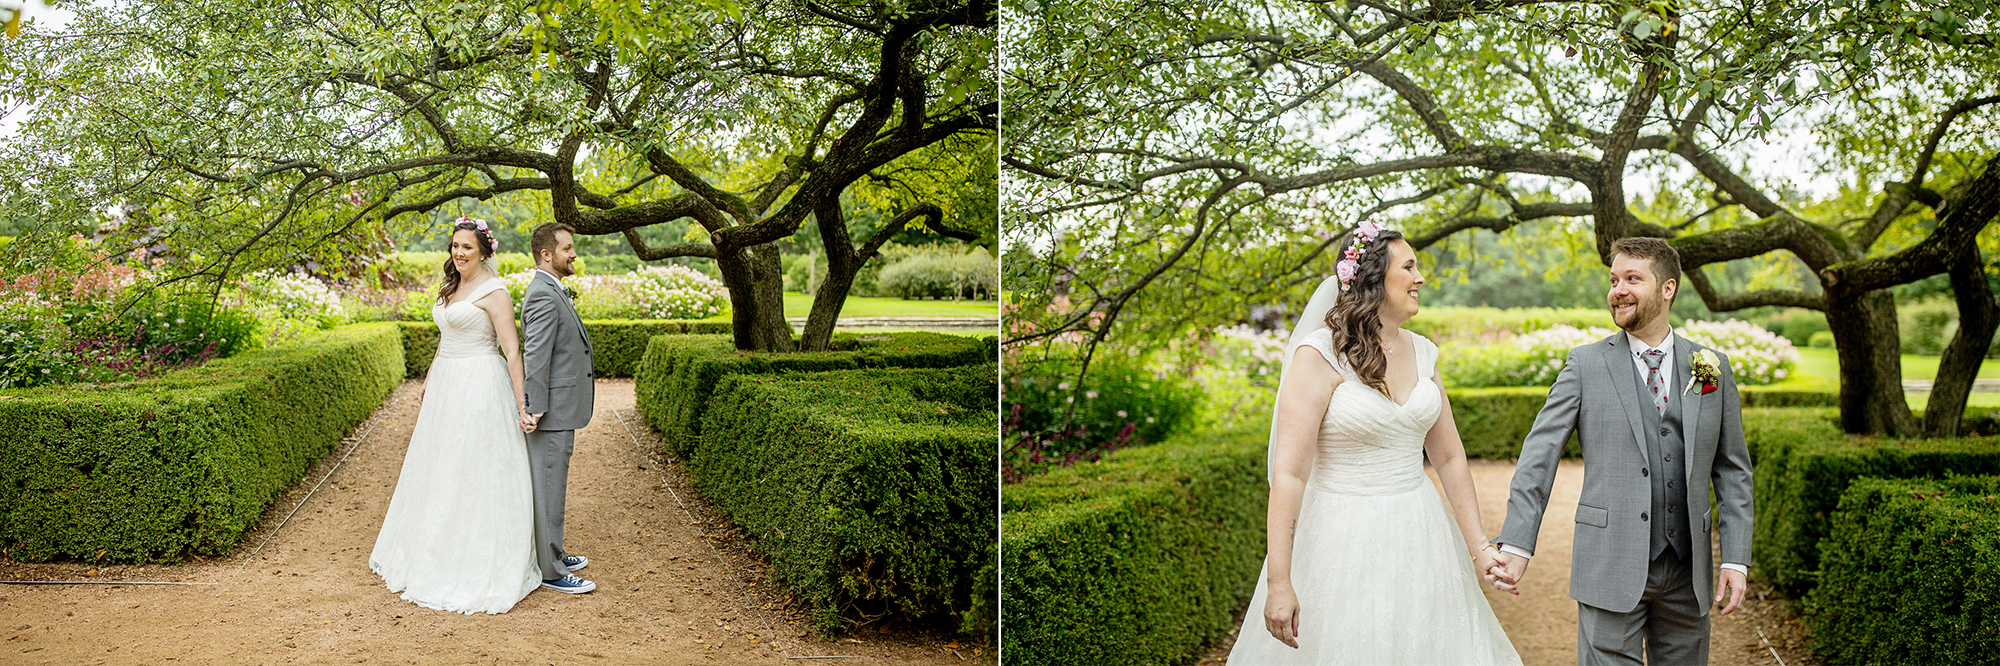 Seriously_Sabrina_Photography_Lisle_Illinois_Morton_Arboretum_Wedding_Day_Gowen26.jpg